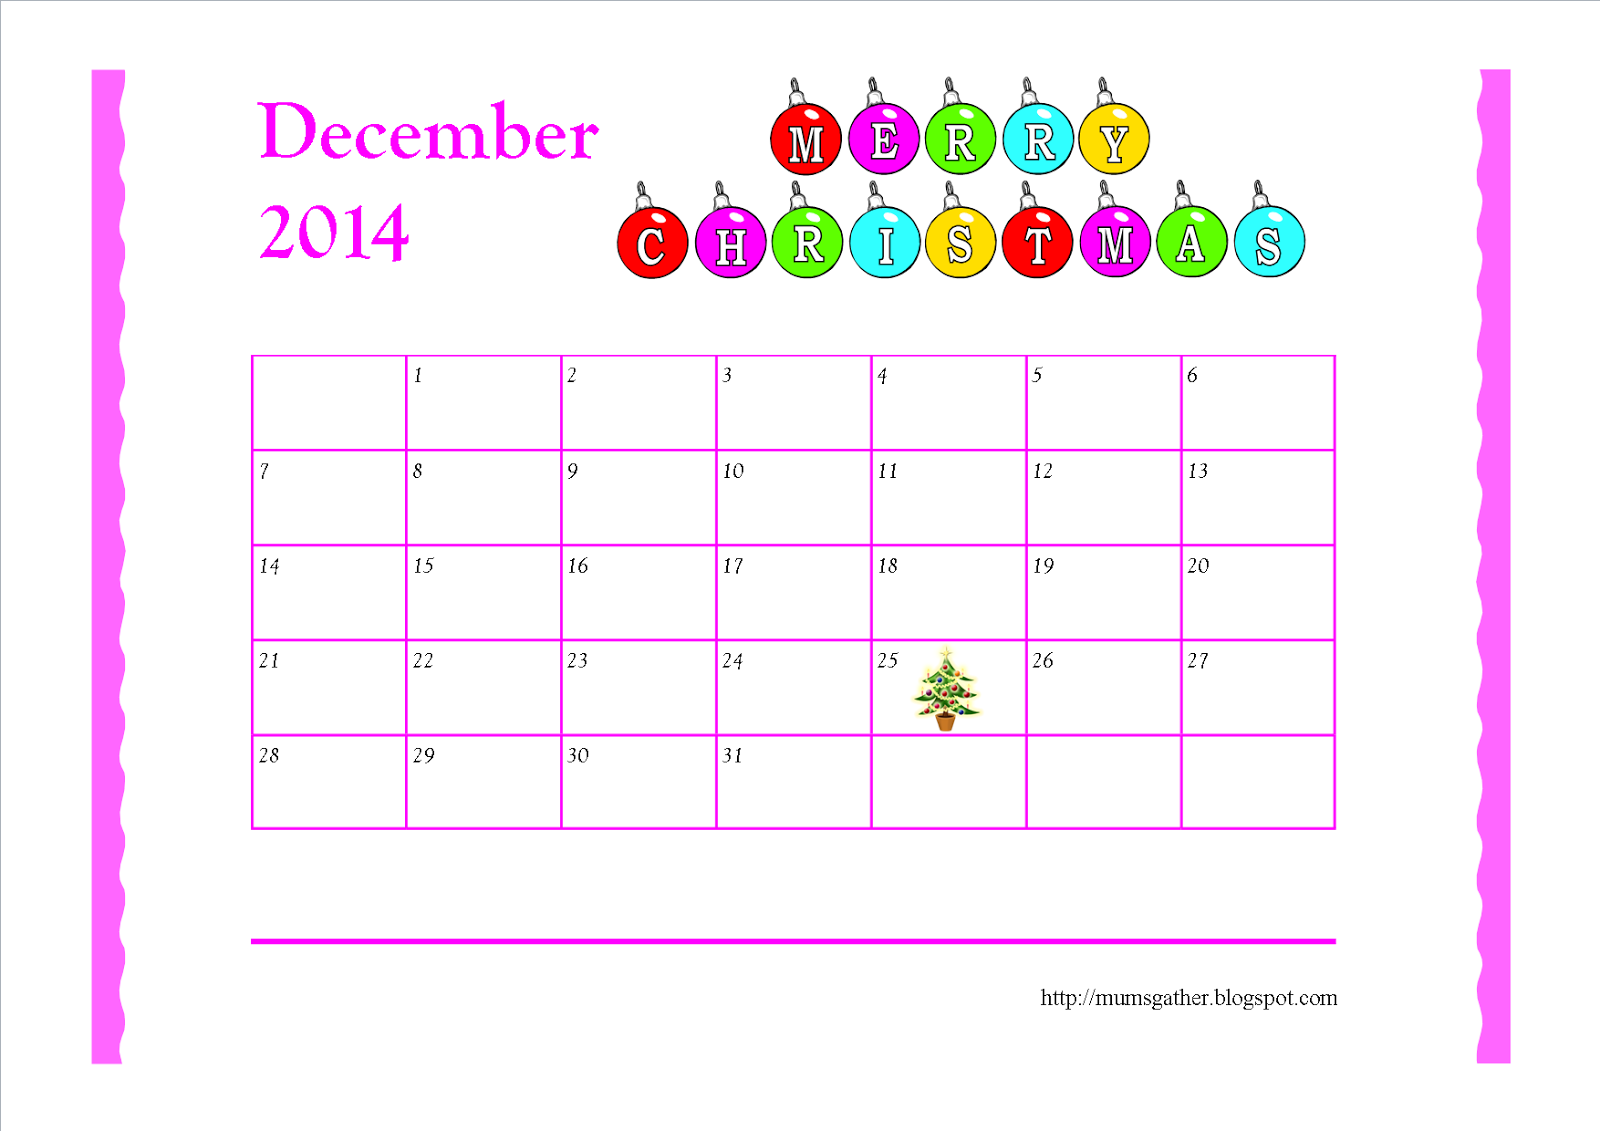 Christmas Calendar 2014 : Free printable december calendar for kids santa